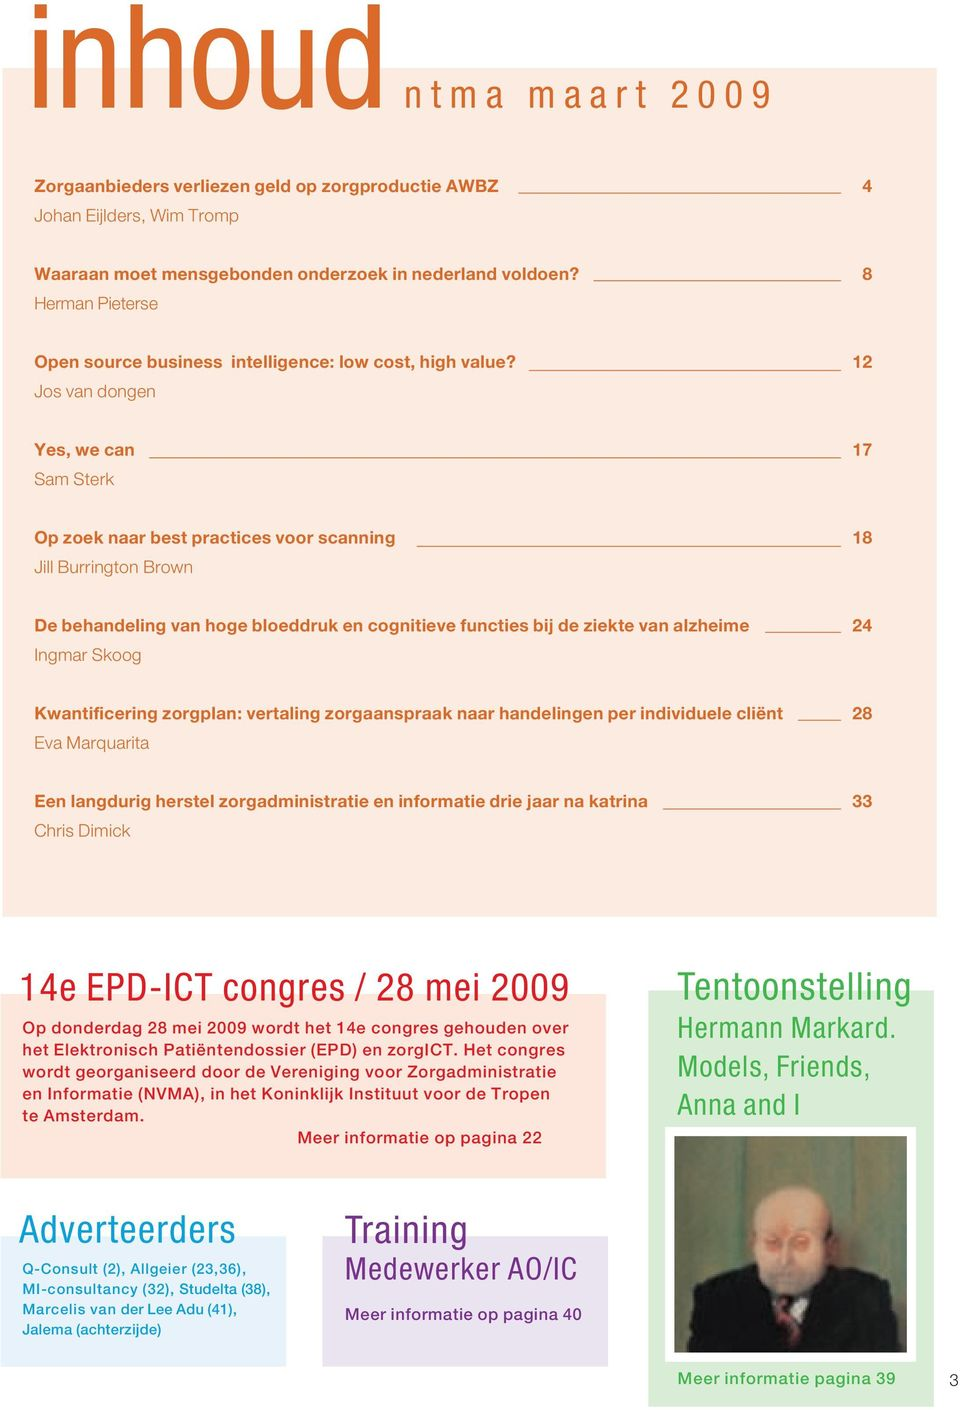 12 Jos van dongen Yes, we can 17 Sam Sterk Op zoek naar best practices voor scanning 18 Jill Burrington Brown De behandeling van hoge bloeddruk en cognitieve functies bij de ziekte van alzheime 24